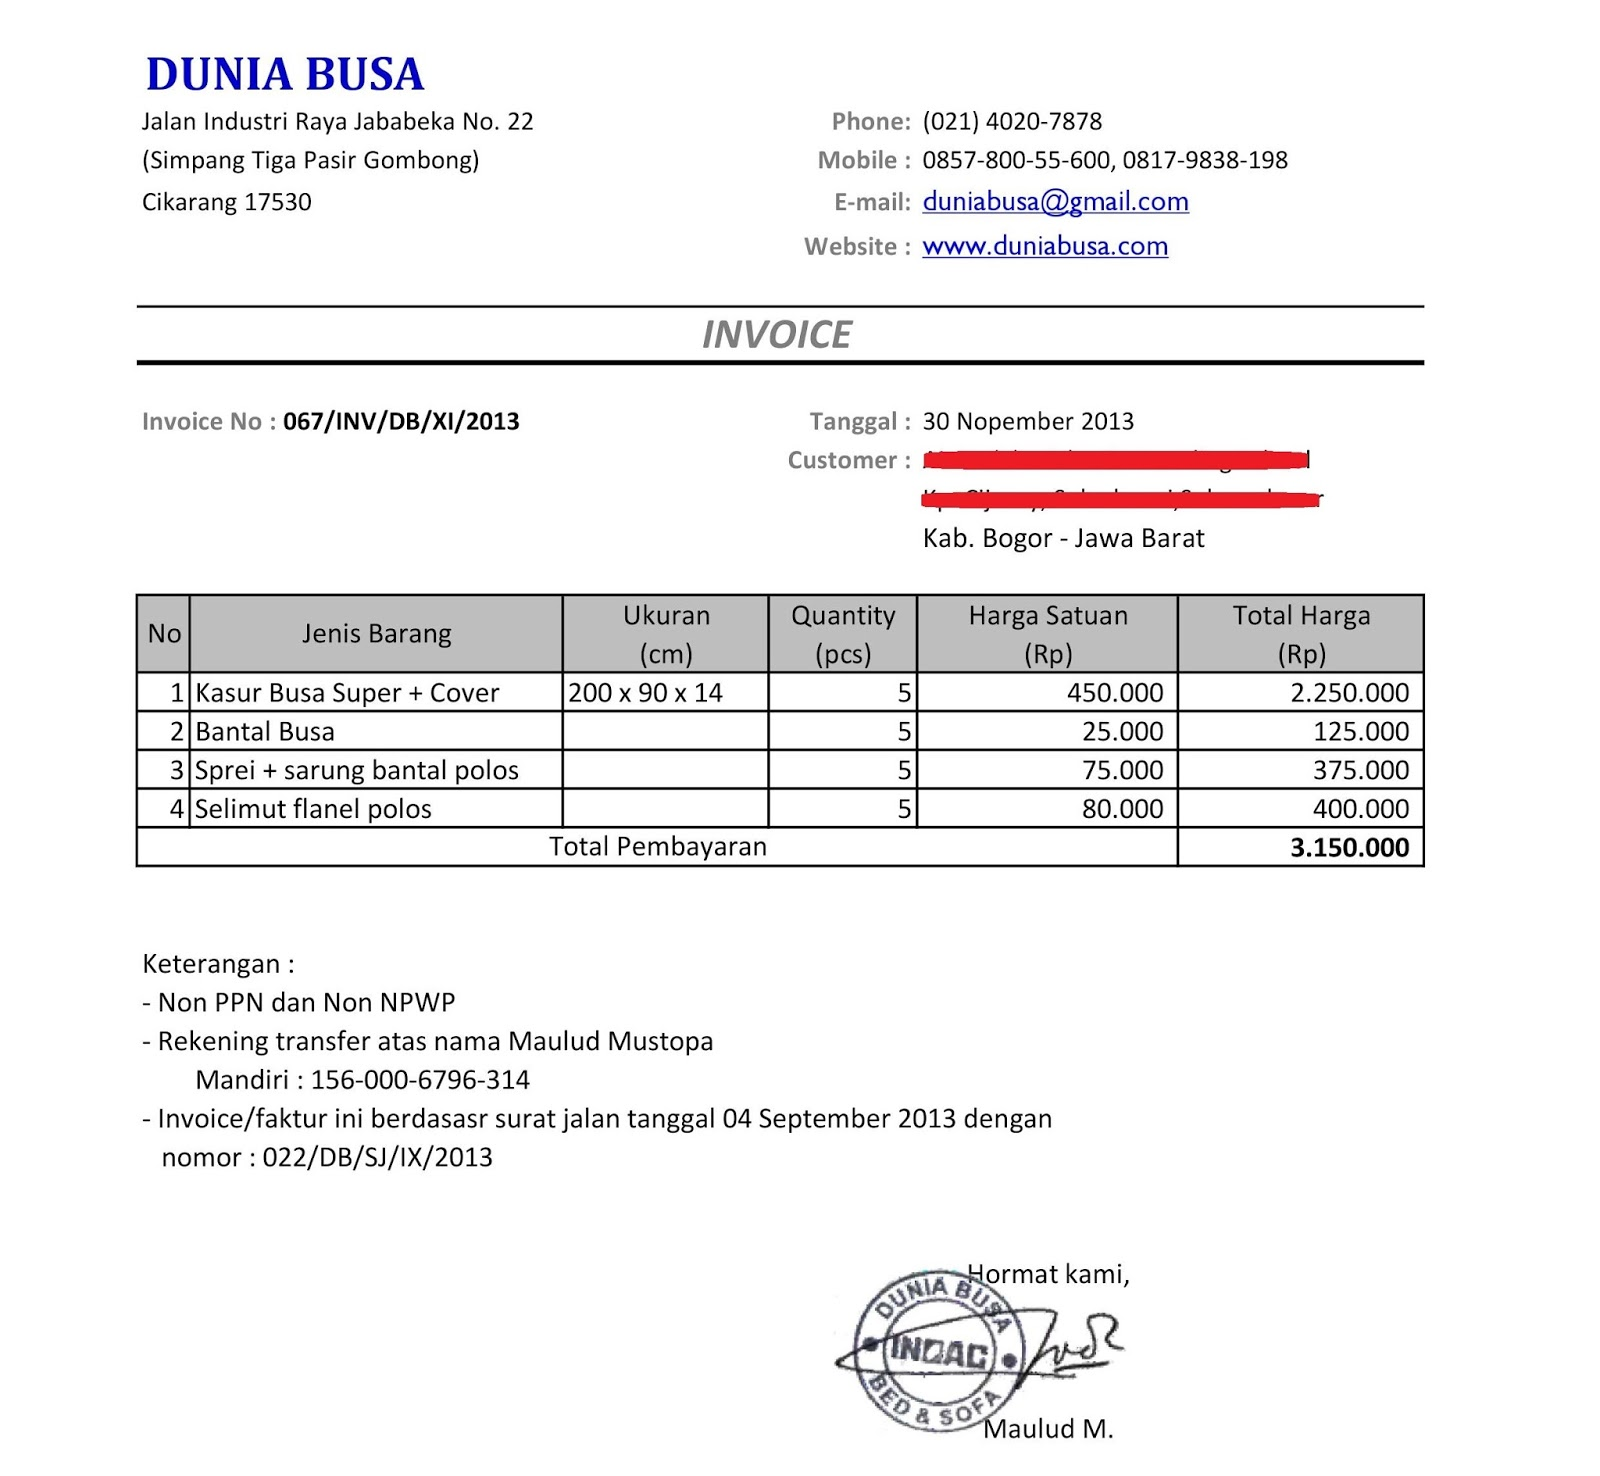 Coachoutletonlineplusus  Nice Free Invoice Online  Create Invoice Online  Invoice Template  With Handsome Contoh Format Invoice Atau Surat Tagihan  Brankas Arsip  Free Invoice Online With Beautiful Blank Receipt Template Free Also Apartment Rental Receipt Template In Addition Trading Receipt And Rent Receipt Format In Word As Well As Bill Receipt Format Additionally Sample Letter Of Acknowledgement Receipt From Sklepco With Coachoutletonlineplusus  Handsome Free Invoice Online  Create Invoice Online  Invoice Template  With Beautiful Contoh Format Invoice Atau Surat Tagihan  Brankas Arsip  Free Invoice Online And Nice Blank Receipt Template Free Also Apartment Rental Receipt Template In Addition Trading Receipt From Sklepco